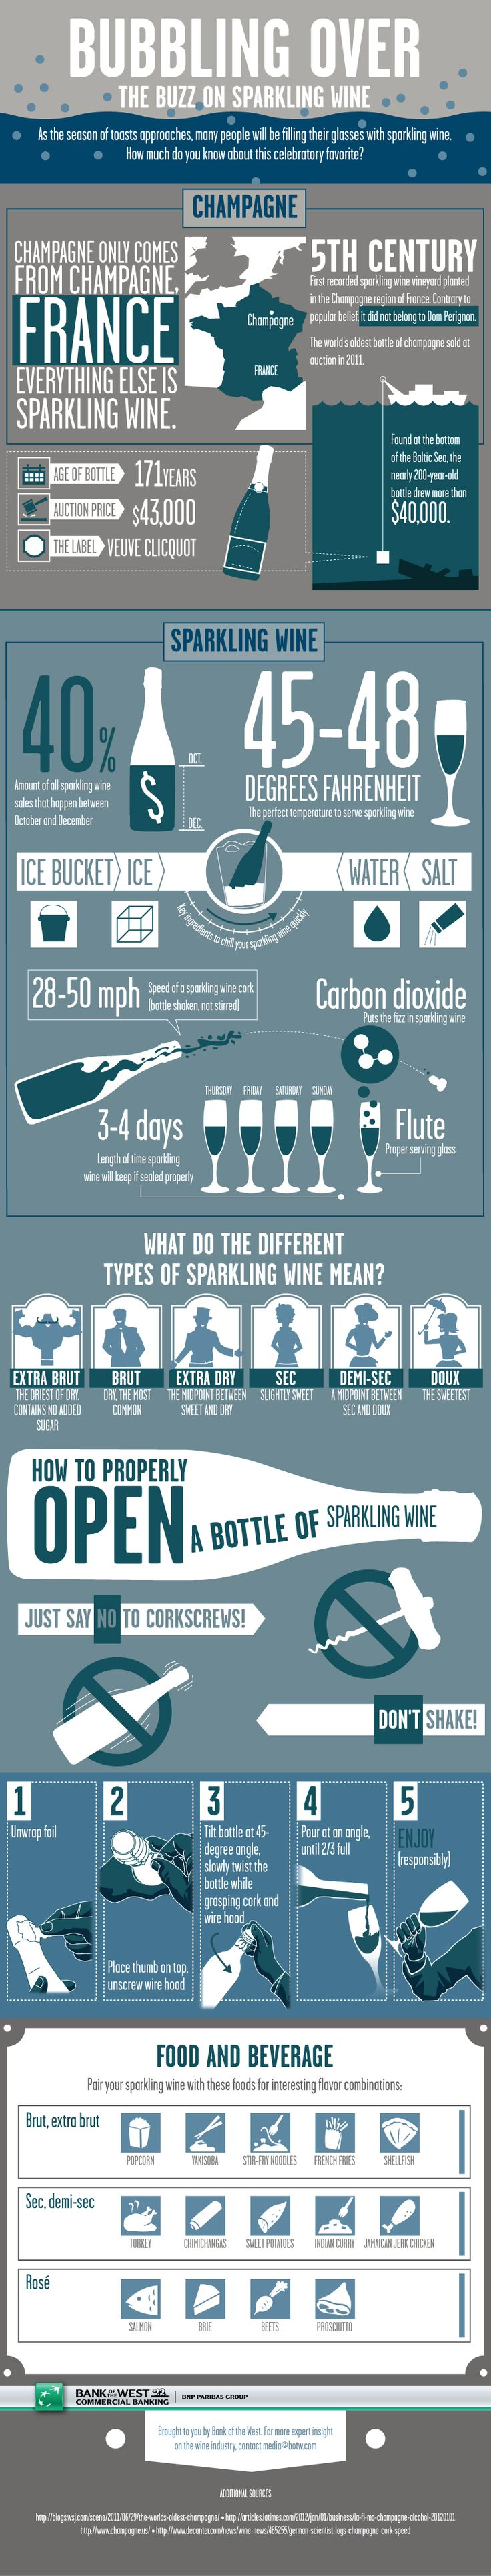 Sparkling Wine Infographic | #WineNight http://www.brioitalian.com/bar_brioso.html?view=full